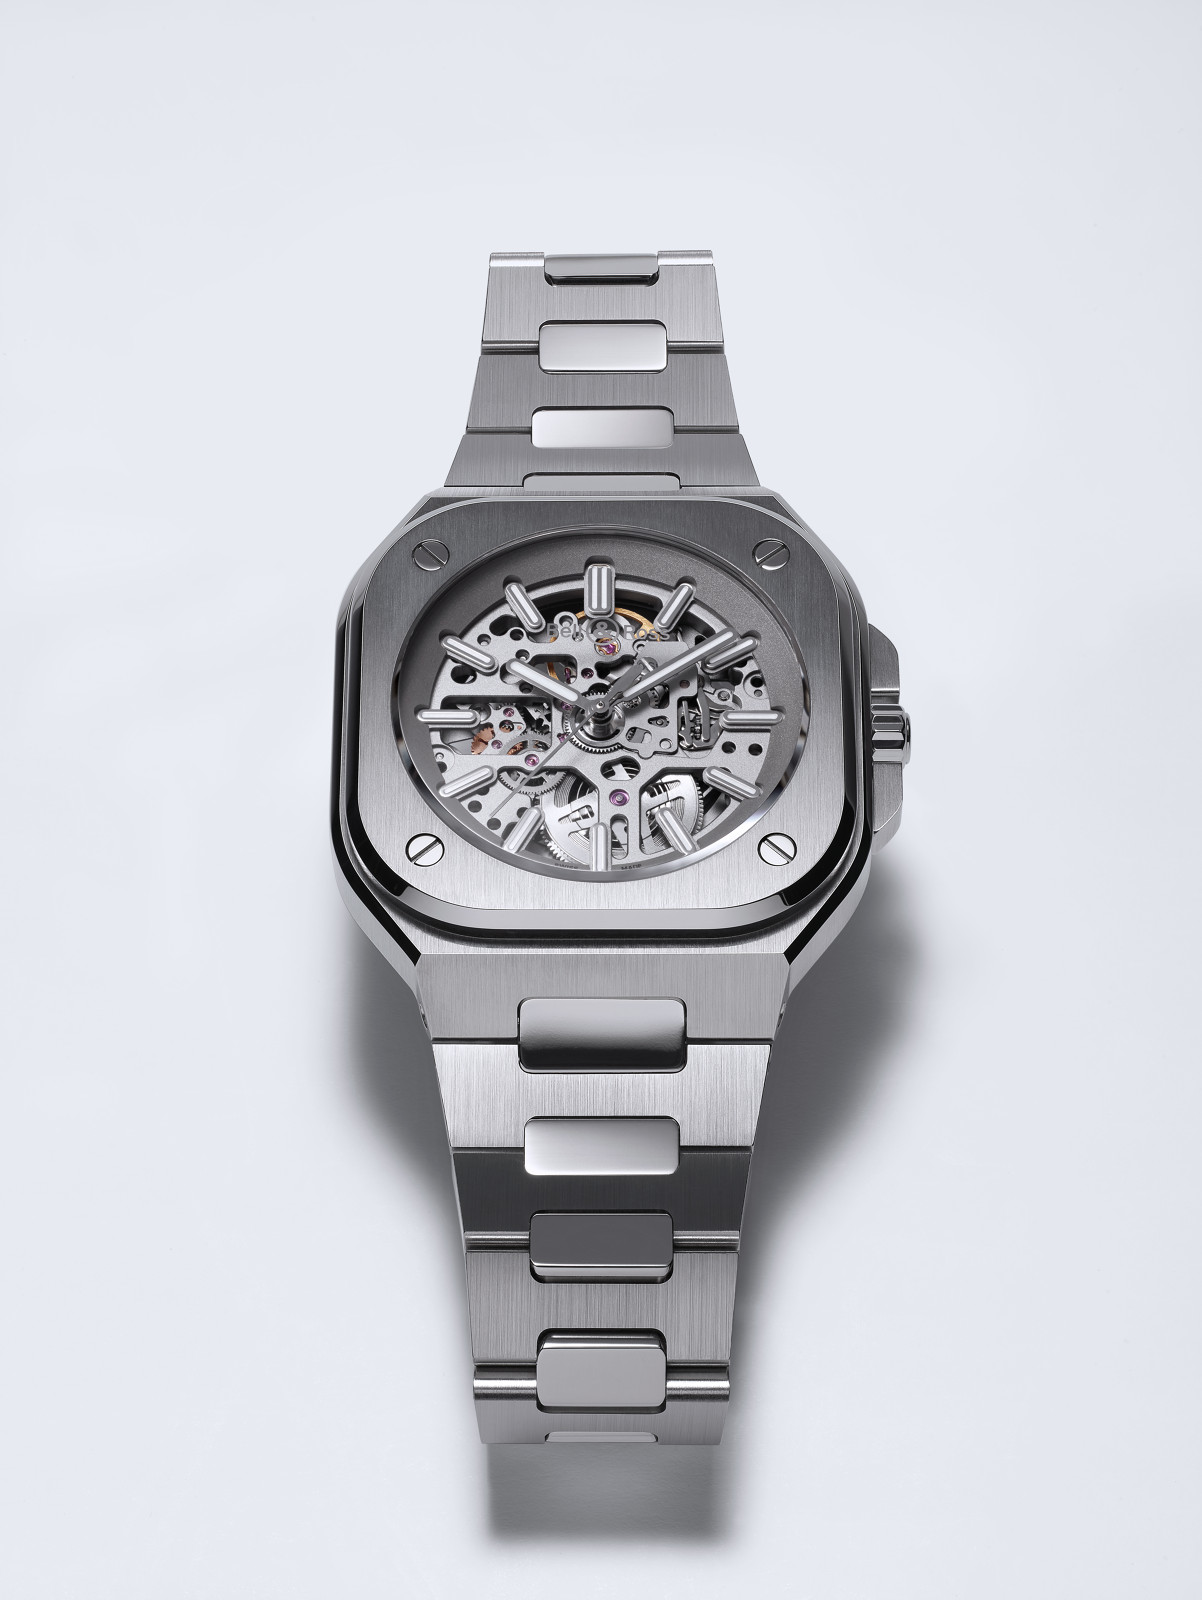 Limited to 500 pieces, the BR 05 Skeleton effortlessly showcases the caliber BR-CAL.322 designed by Bell & Ross.